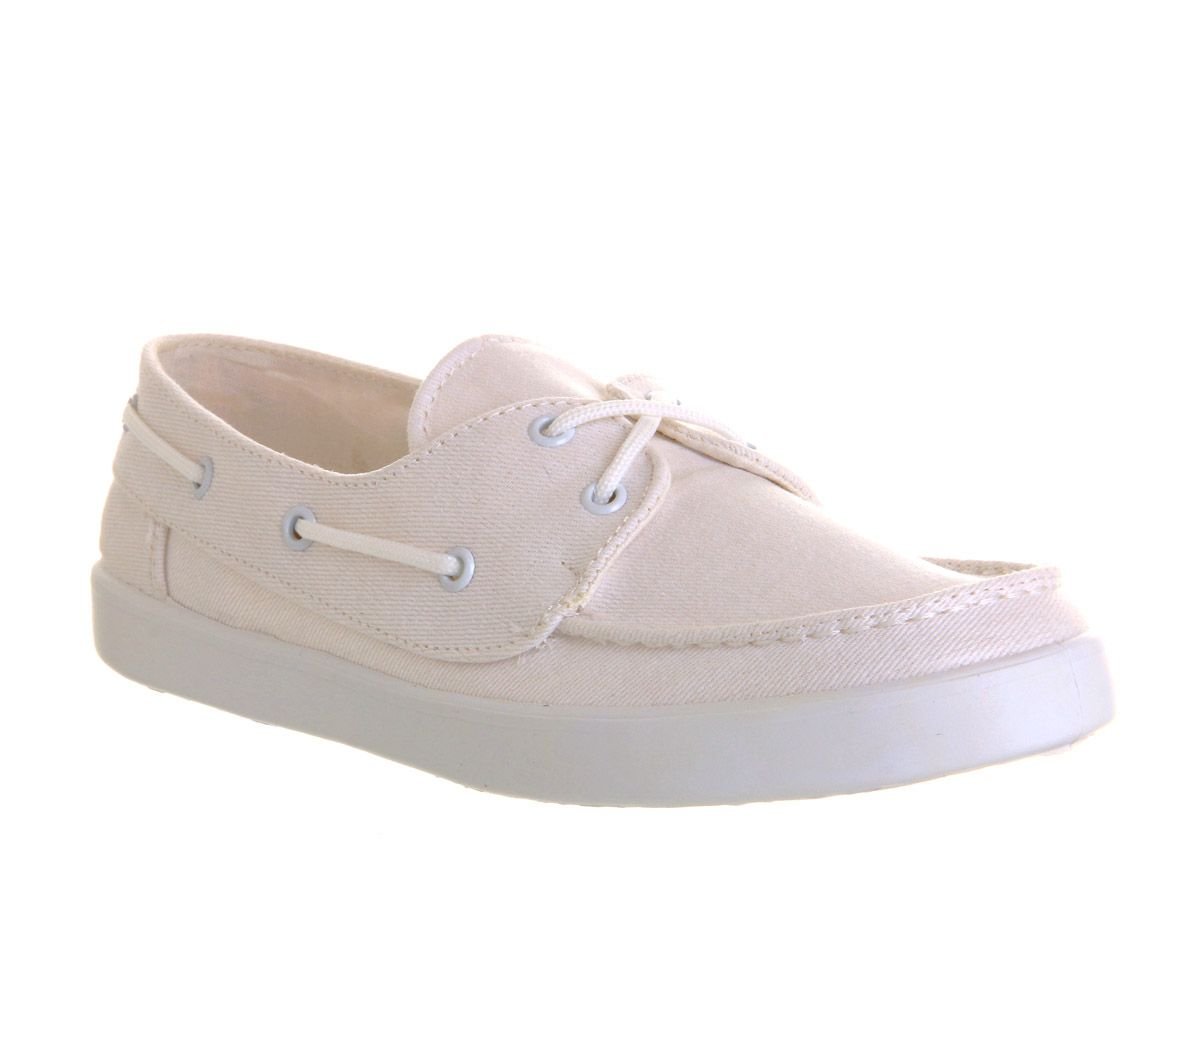 Knot round toe flat boat shoes